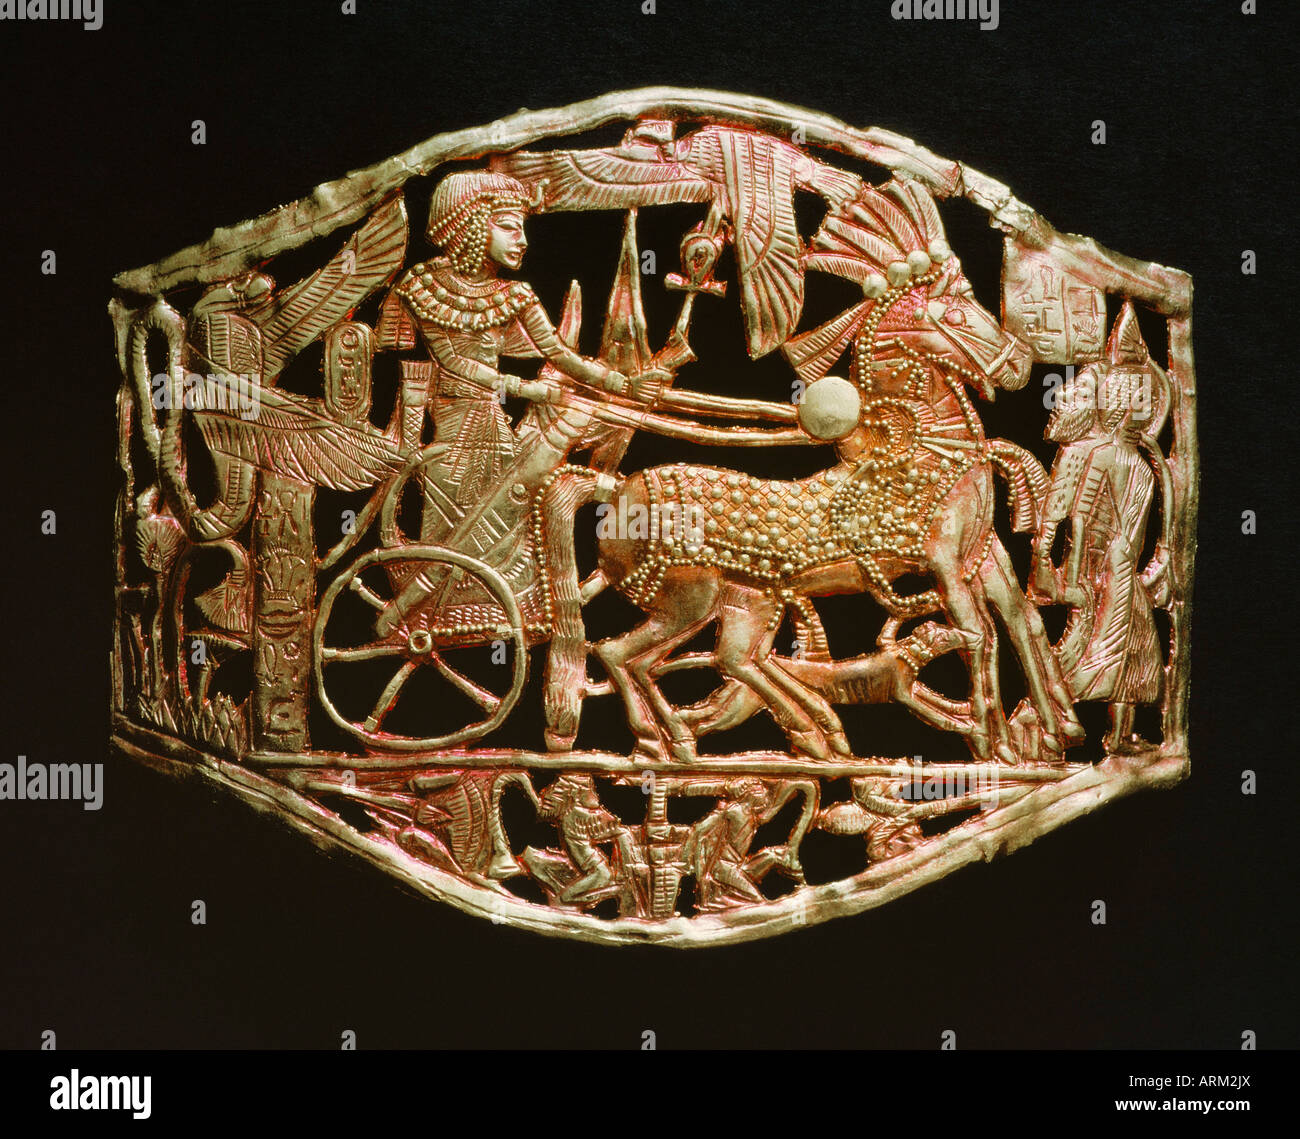 Red-gold openwork object, from the tomb of the pharaoh Tutankhamun - Stock Image